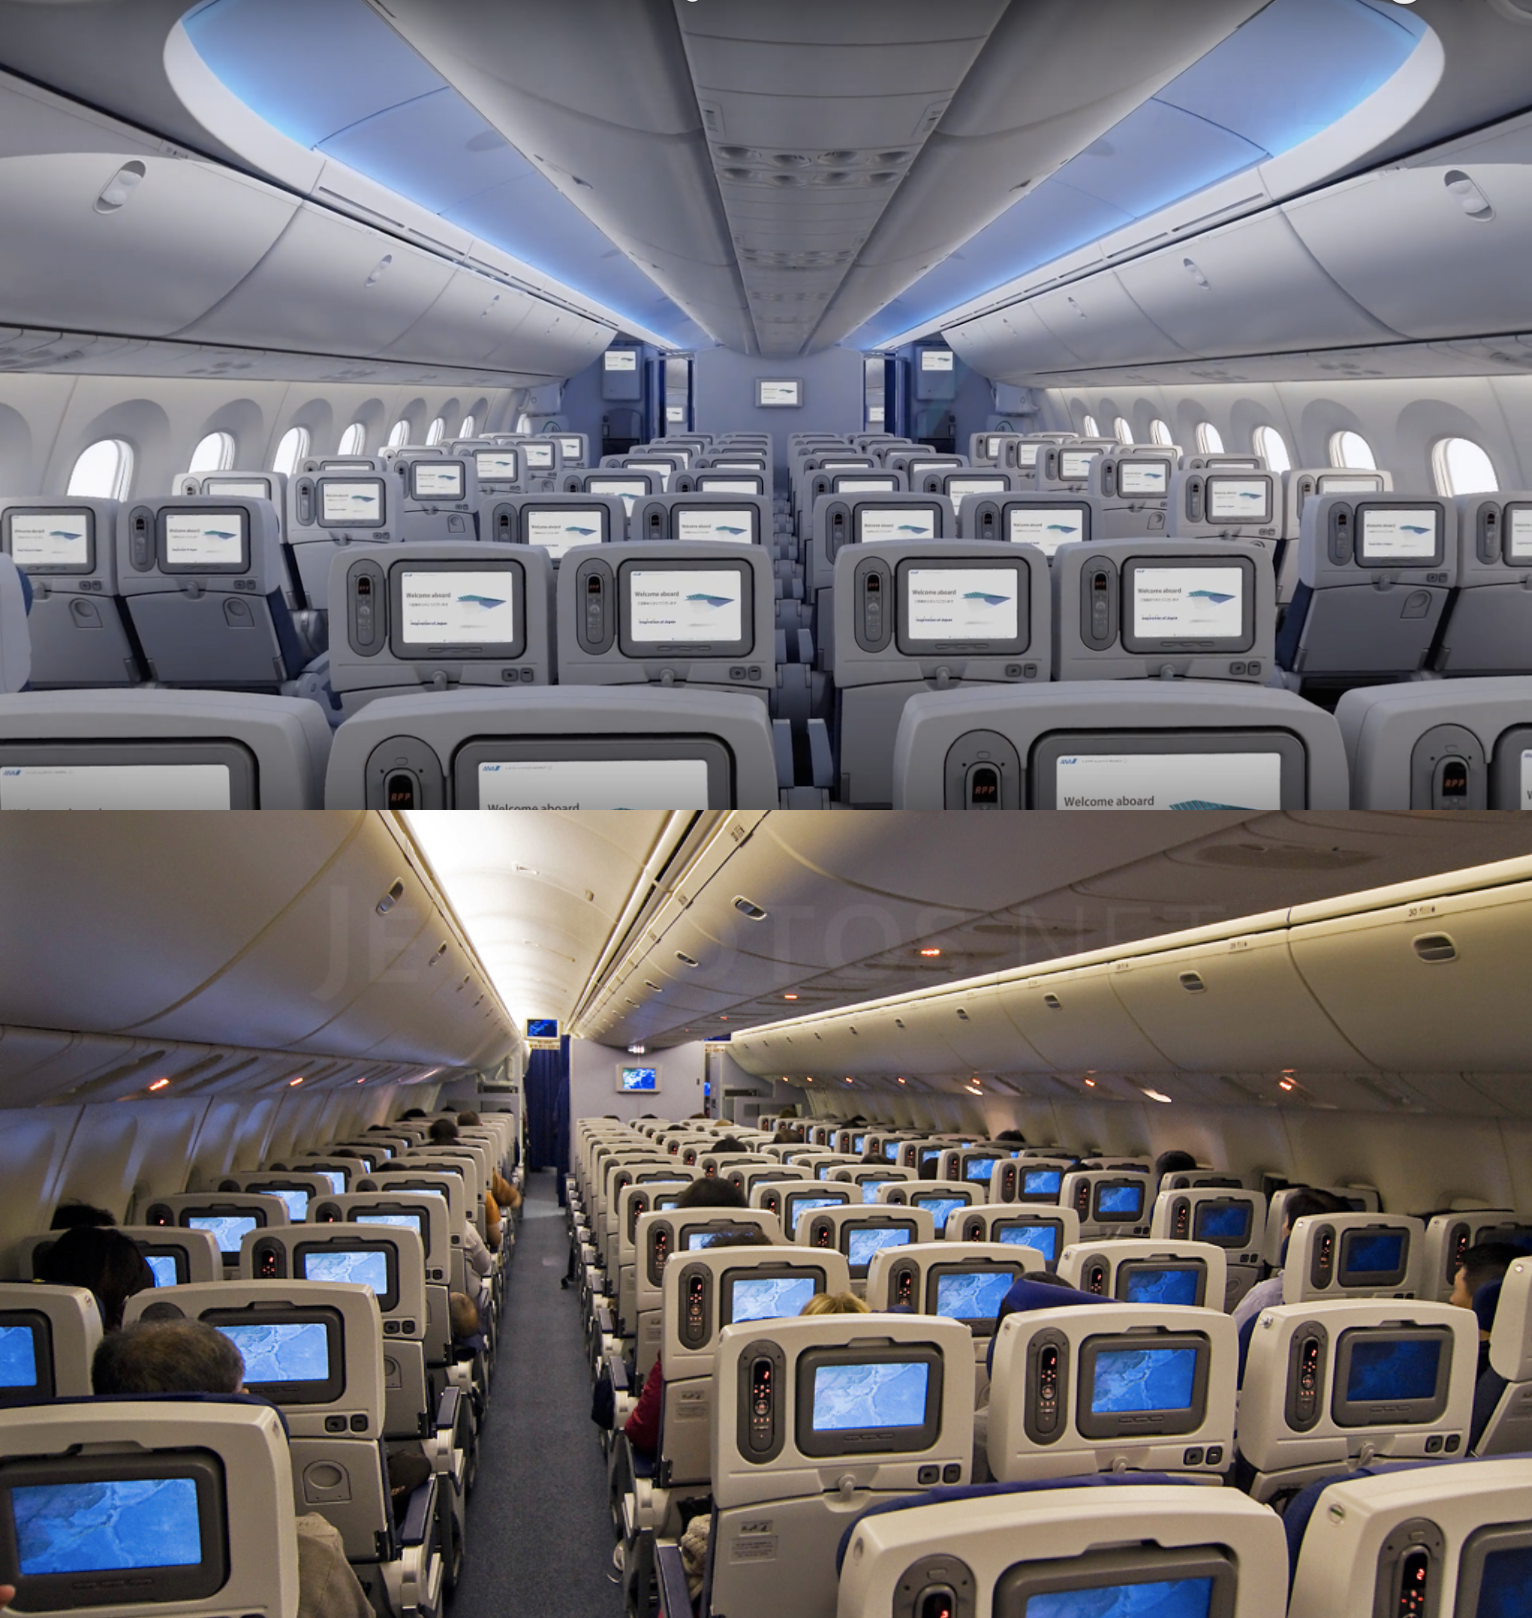 What makes the 787 Dreamliner so different than other Boeing